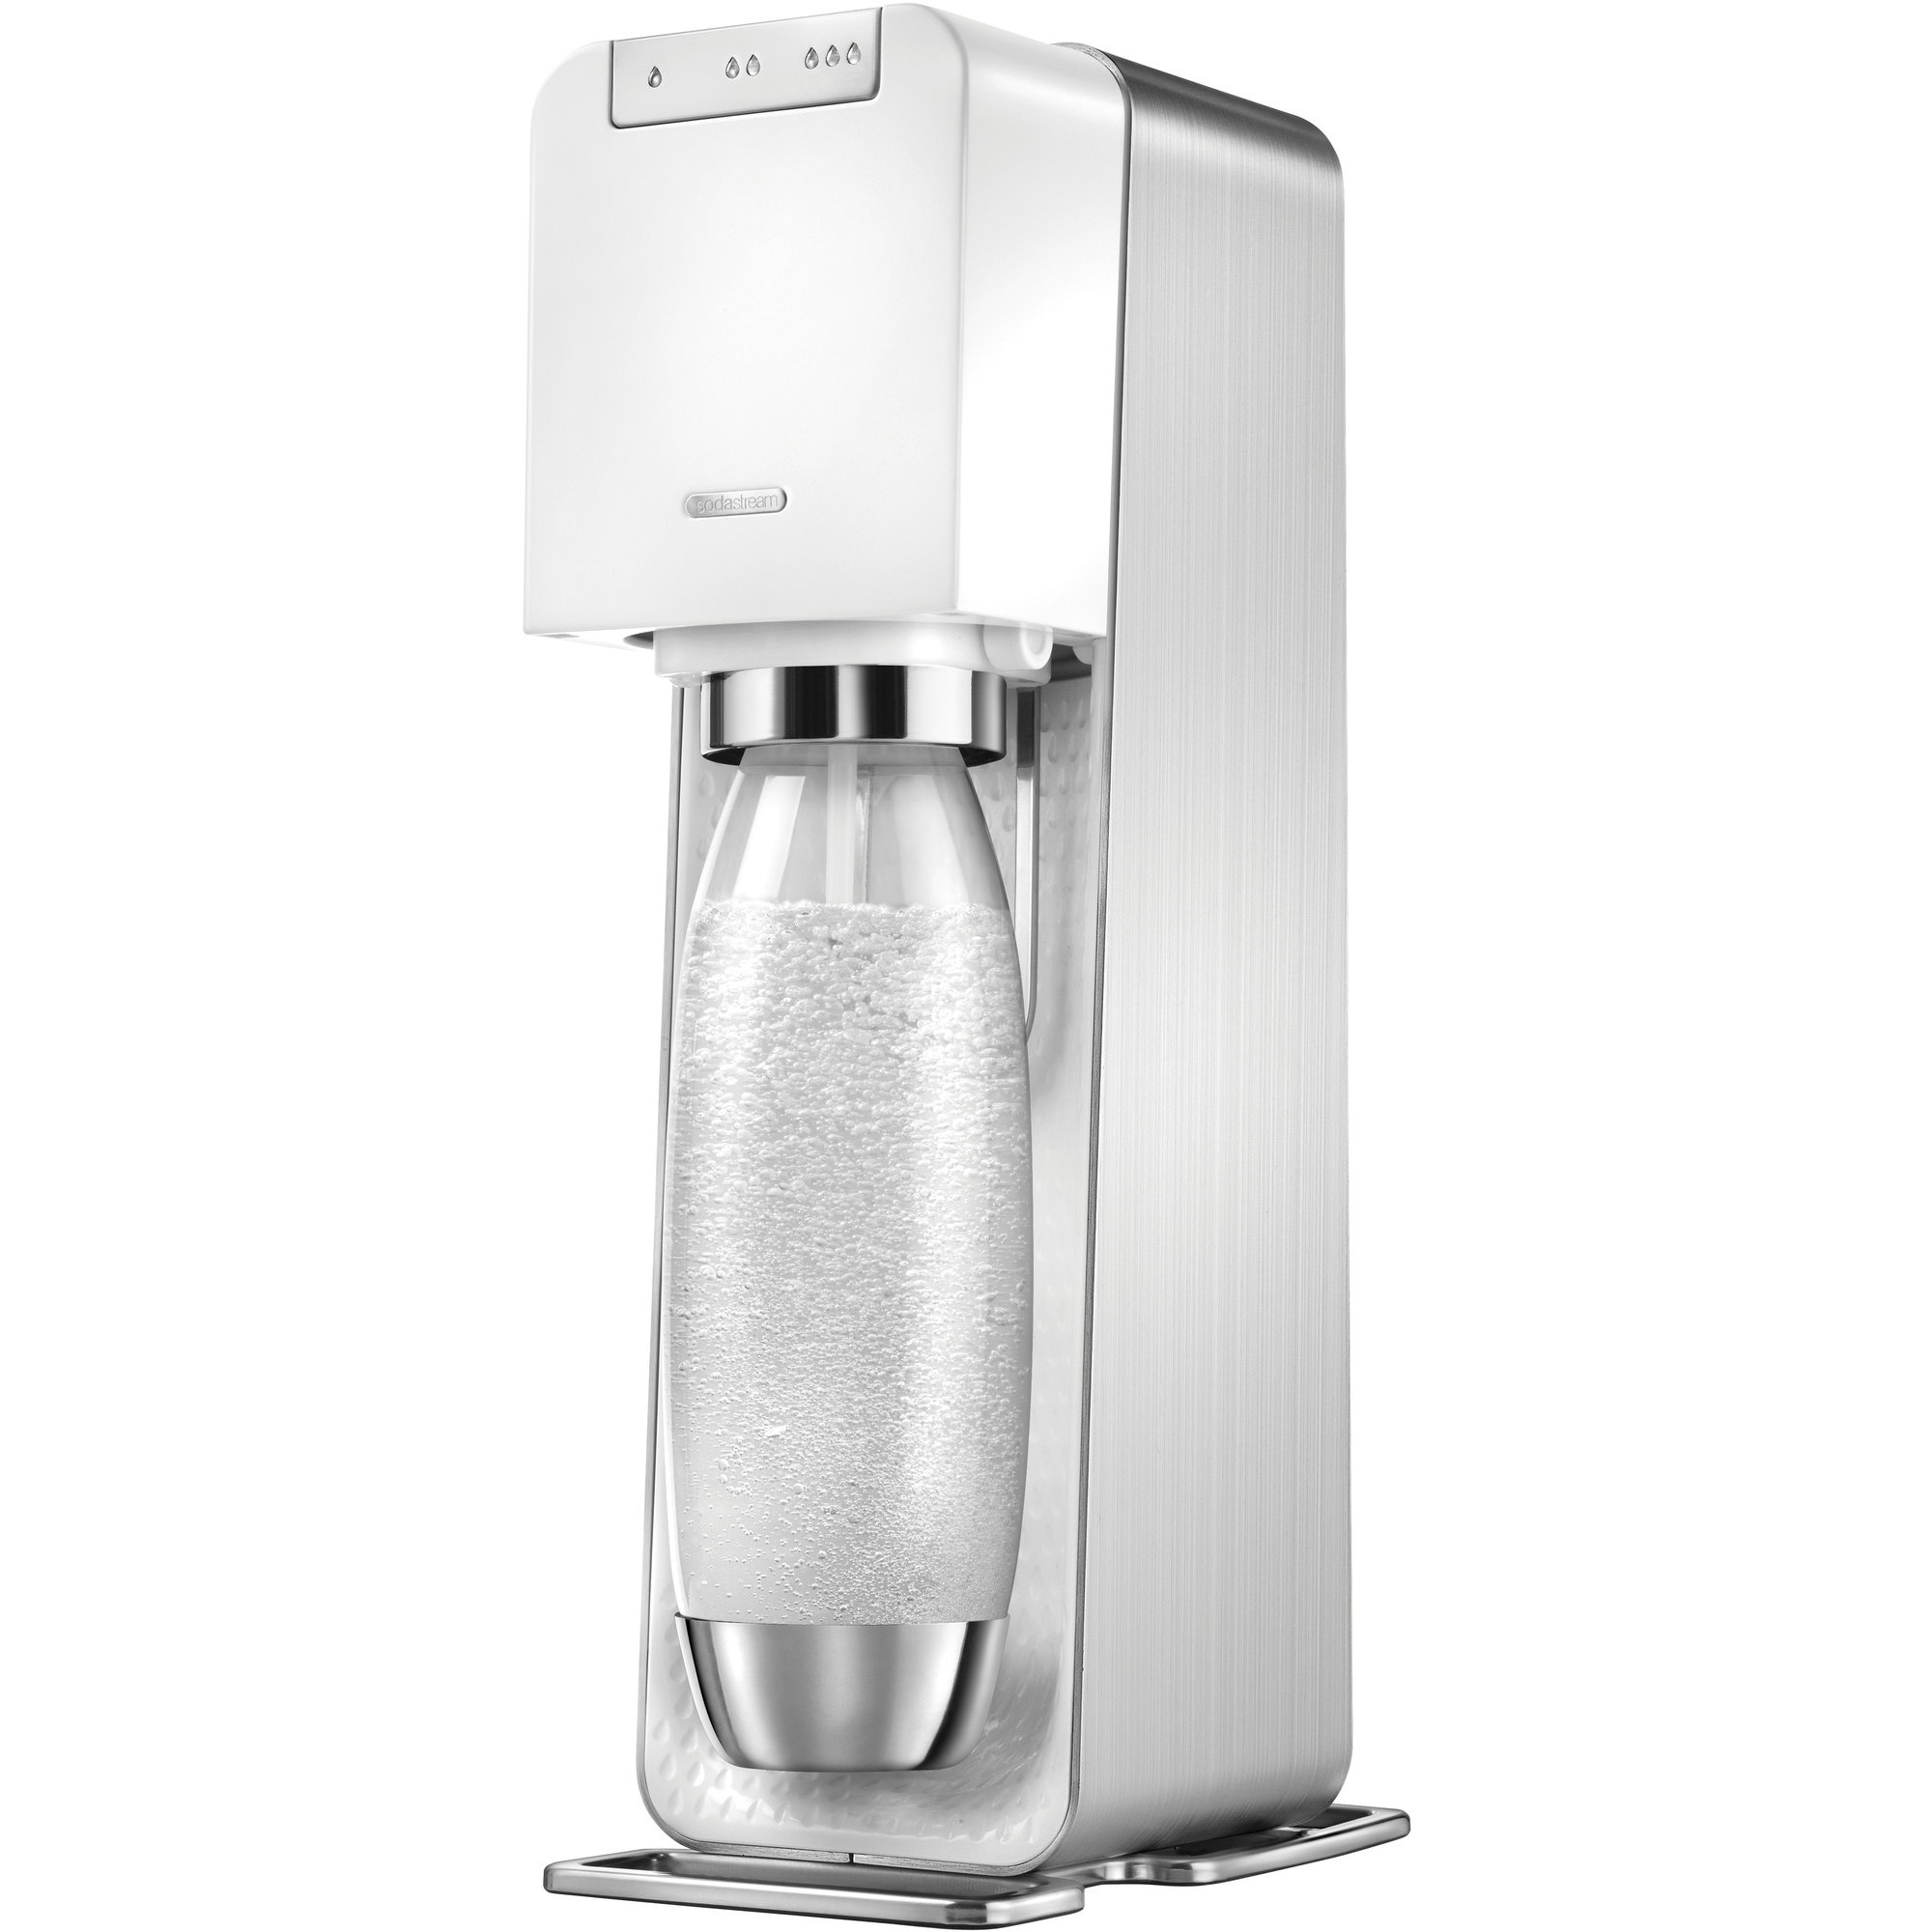 SodaStream Power Kolsyremaskin Vit